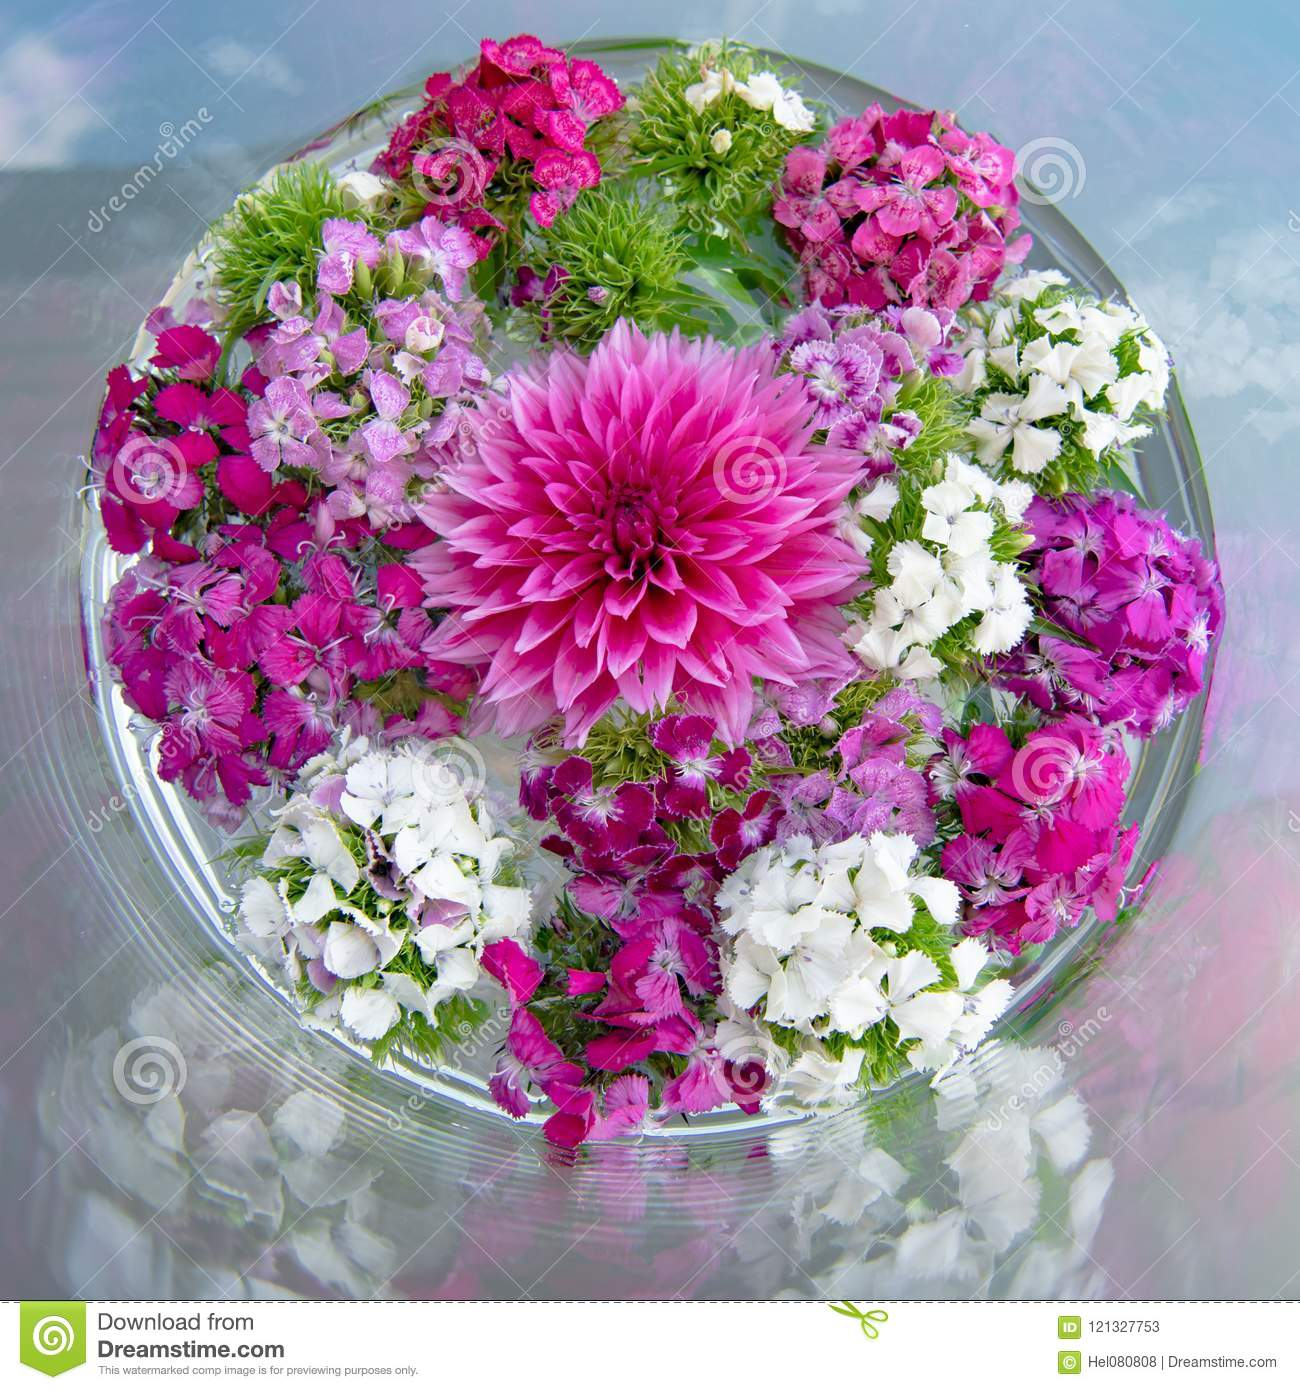 Dahlia And Daisy Flowers On Table Flowering Table Deceoration